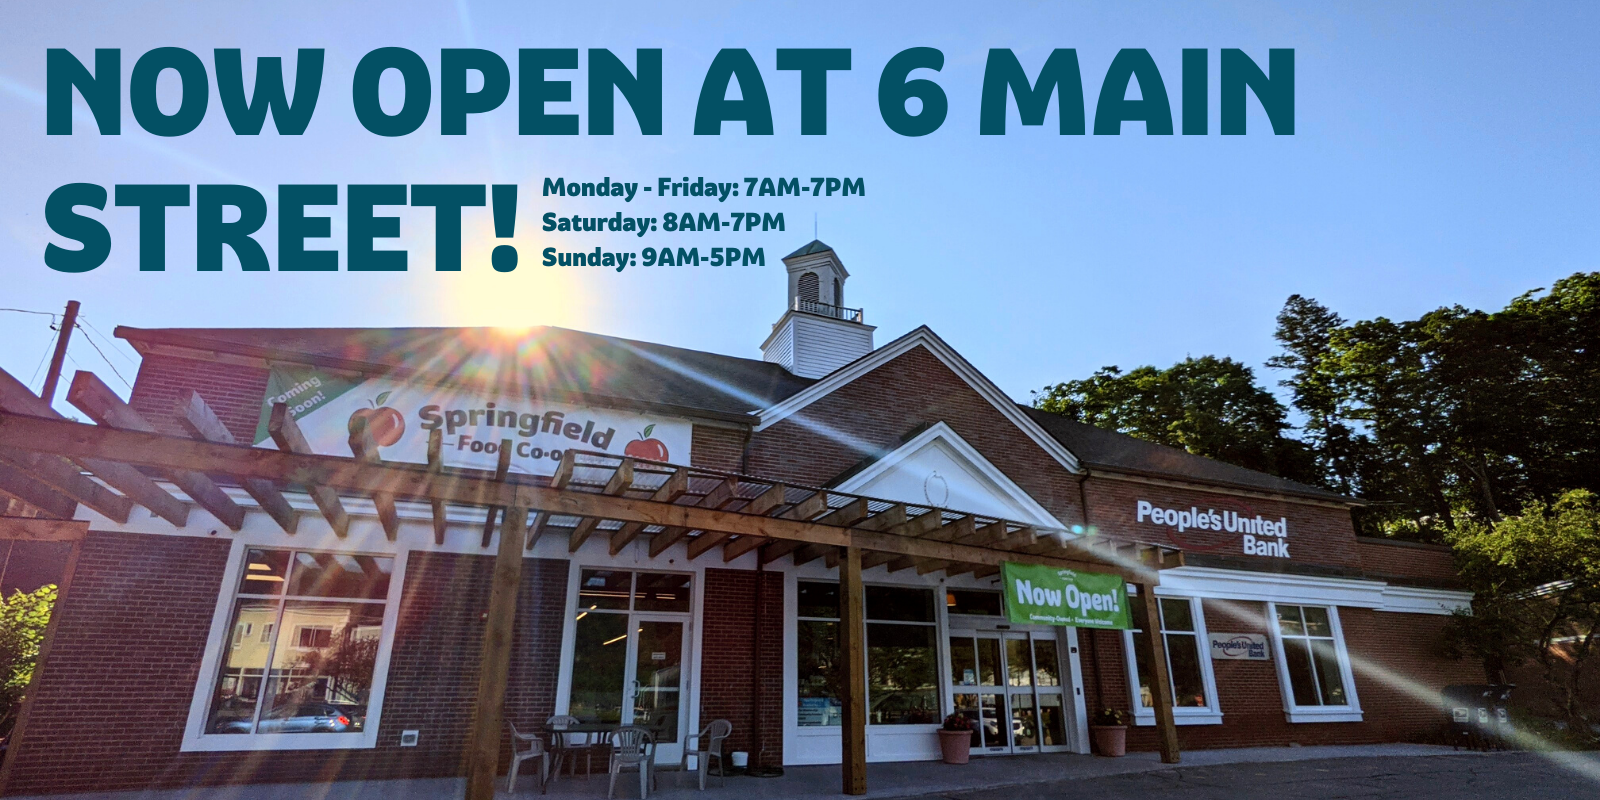 [IMAGE OF NEW DOWNTOWN STOREFRONT]  NOW OPEN AT 6 MAIN STREET  Monday - Friday: 7AM-7PM Saturday: 8AM-7PM Sunday: 9AM-5PM